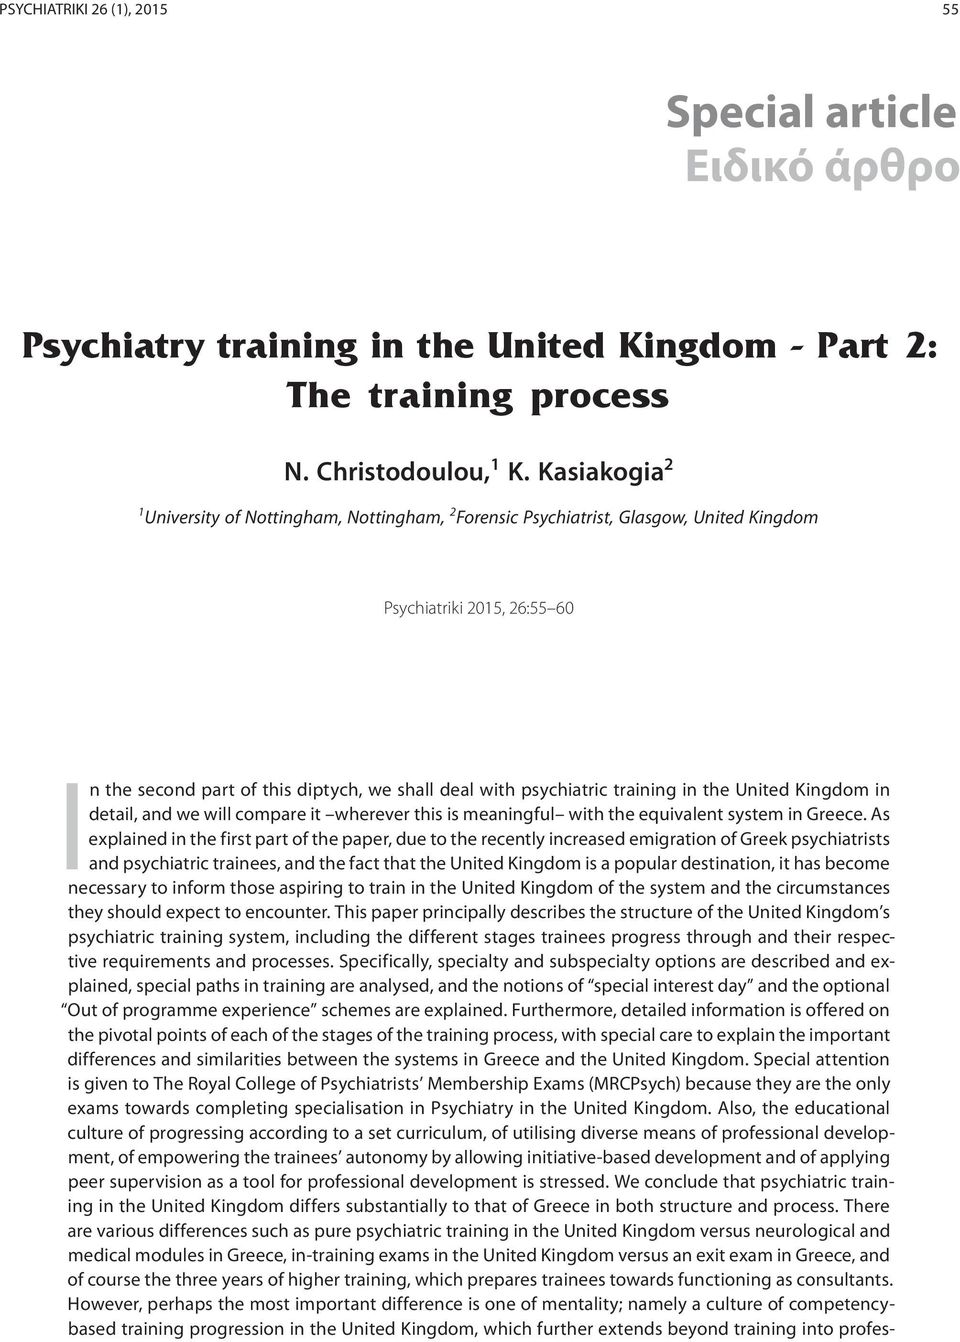 training in the United Kingdom in detail, and we will compare it wherever this is meaningful with the equivalent system in Greece.